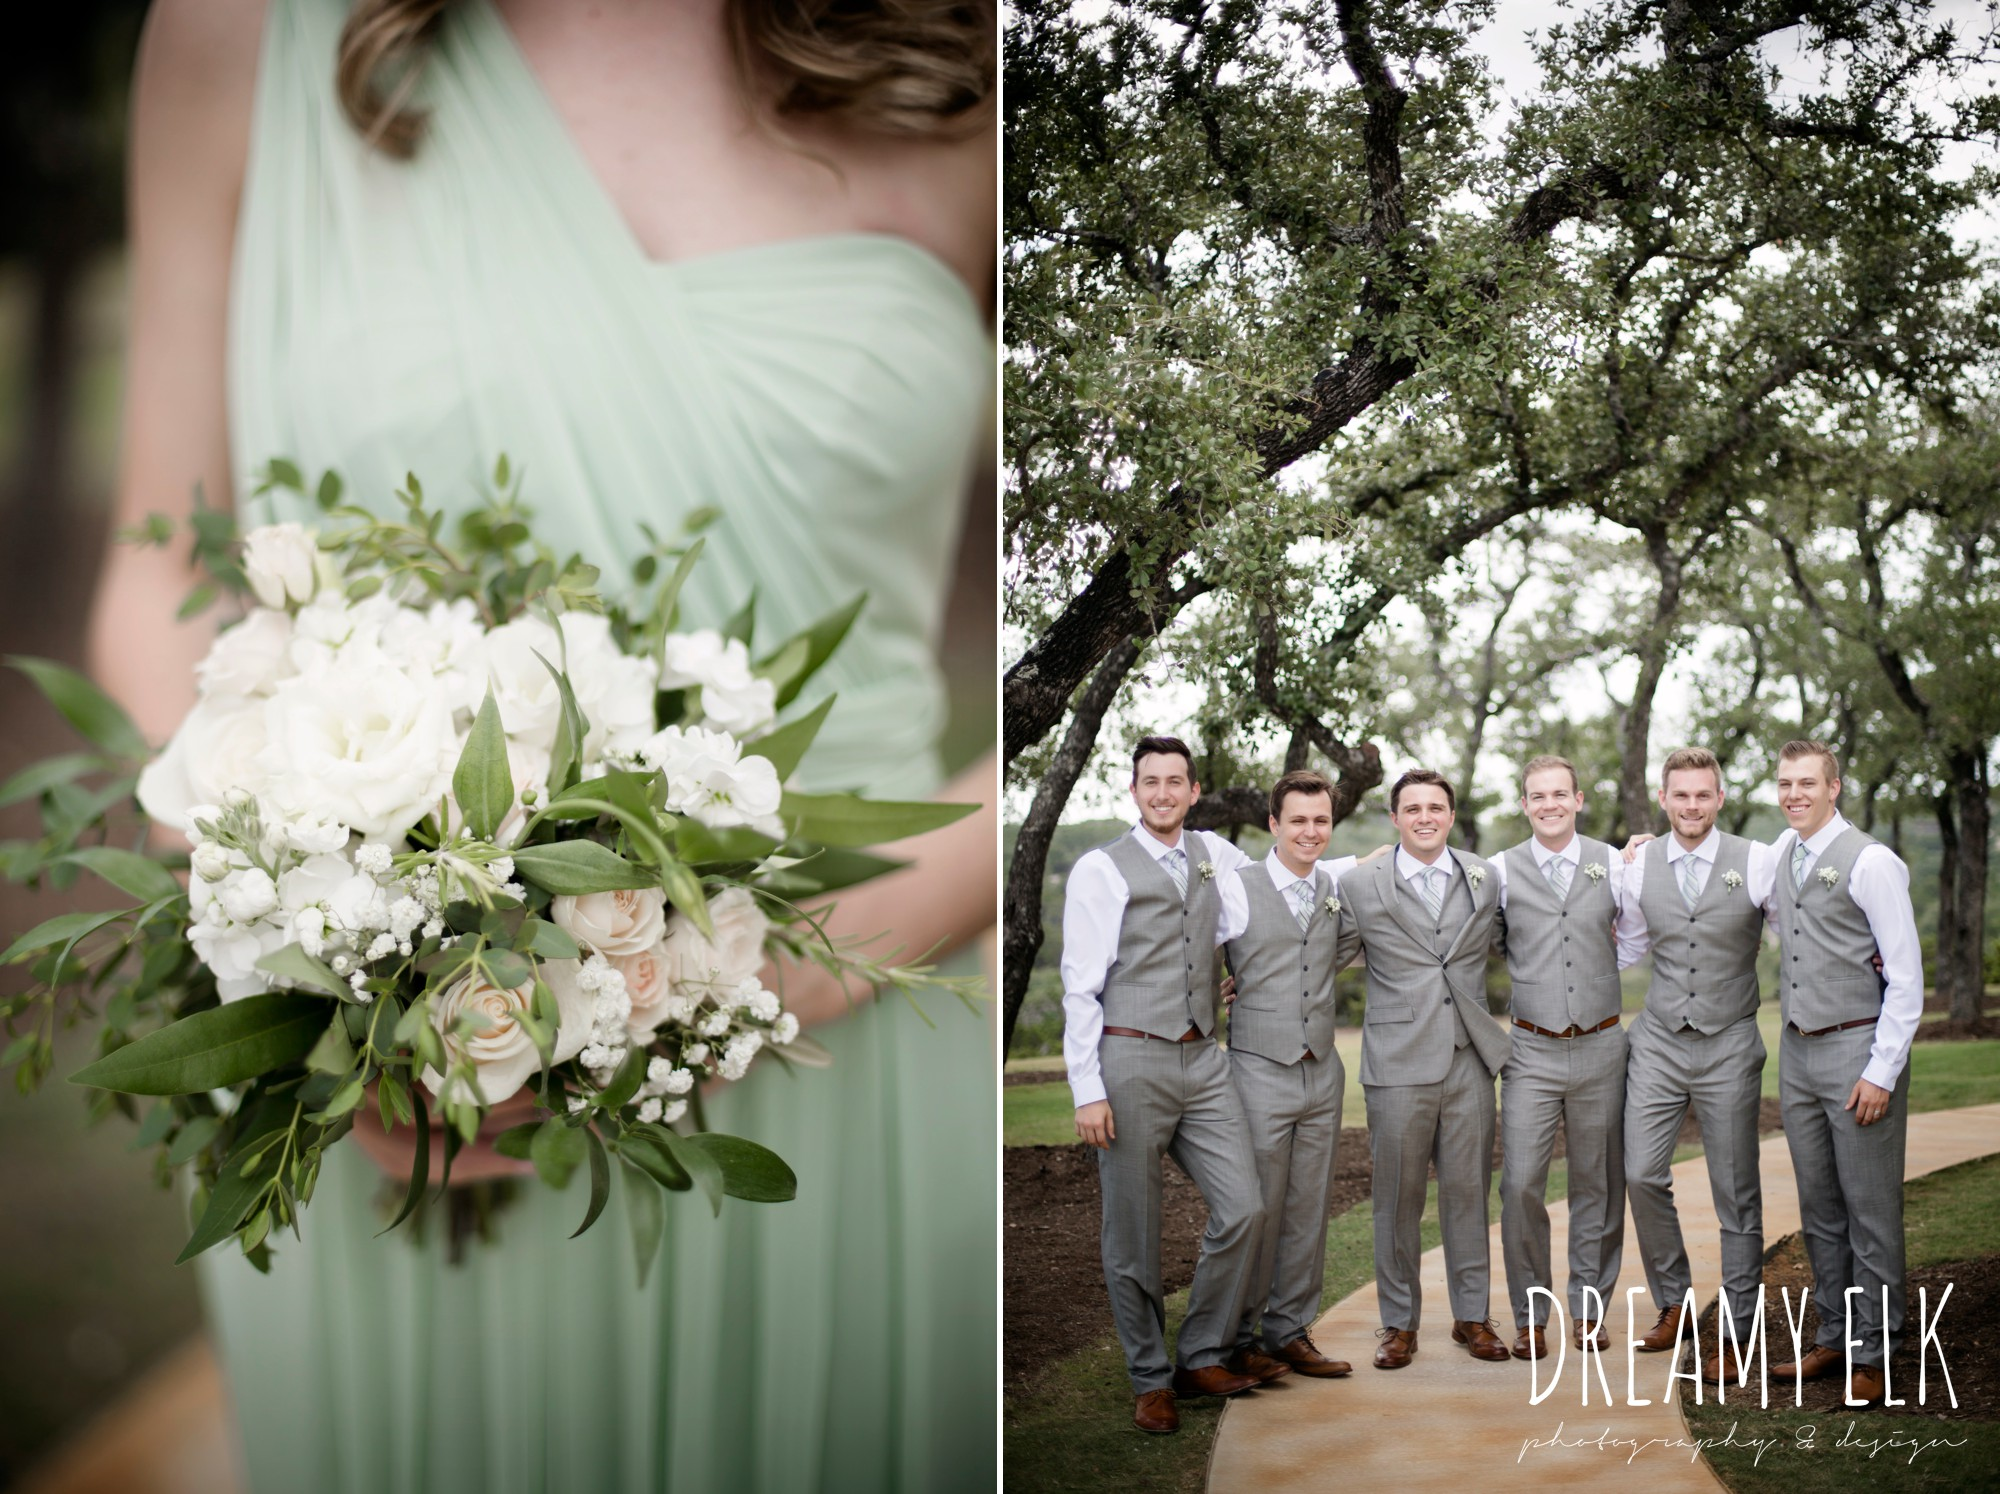 bride, bridesmaids, mix and match long mint bridesmaids dress, groomsmen, groom, mens wearhouse, gray suits, summer july wedding photo, canyonwood ridge, dripping springs, texas {dreamy elk photography and design}